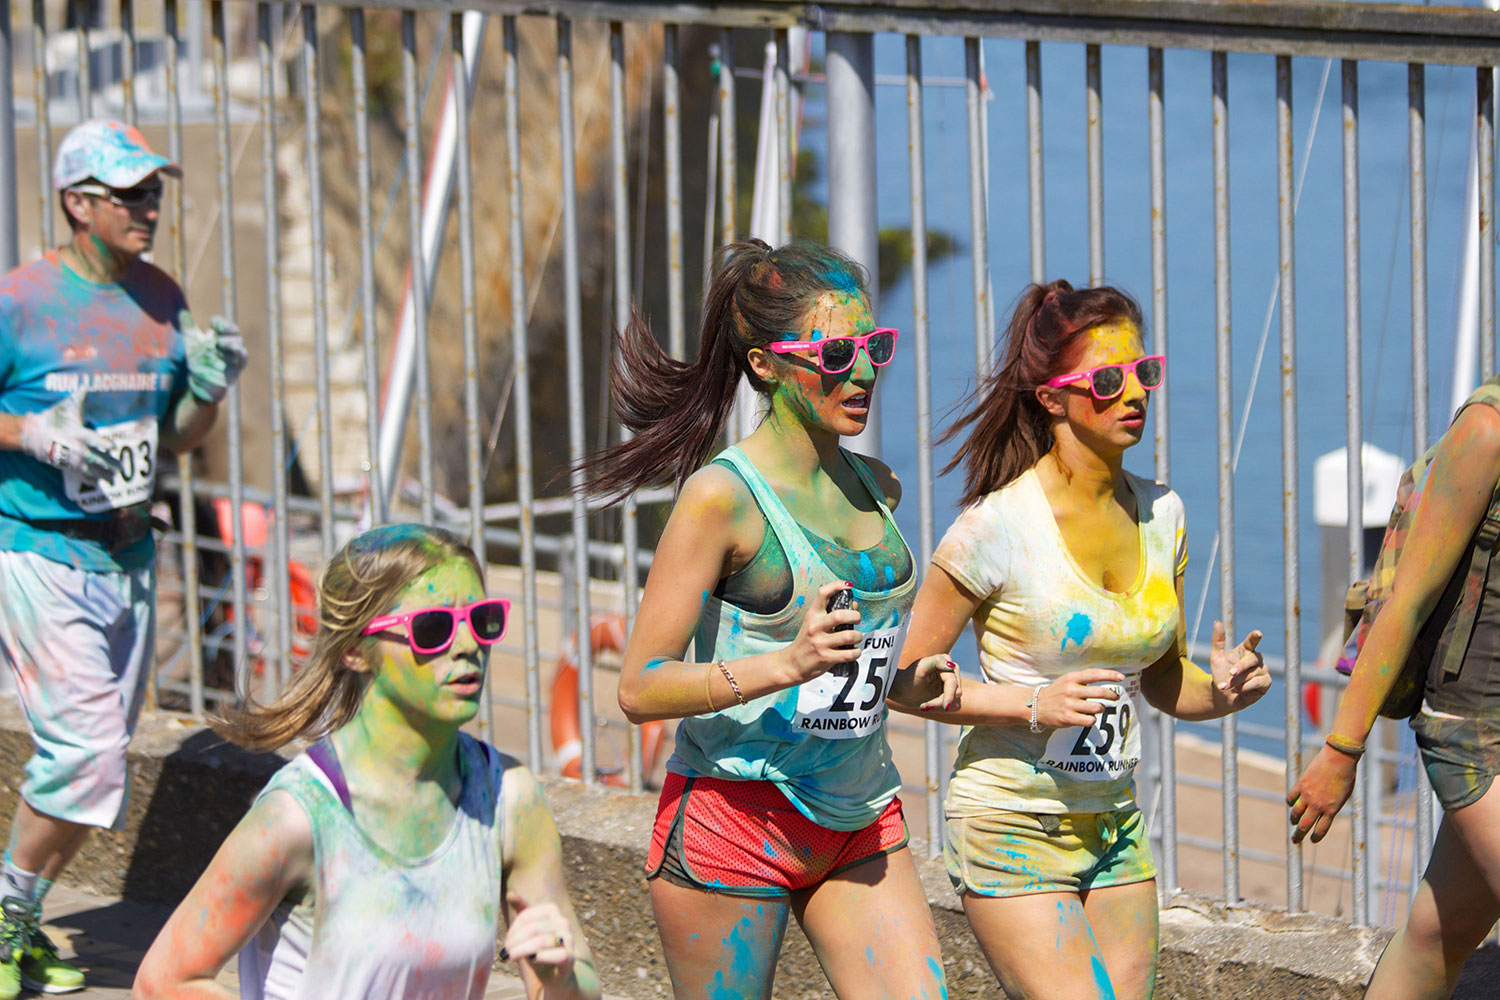 people-jogger-jogging-colors.jpg